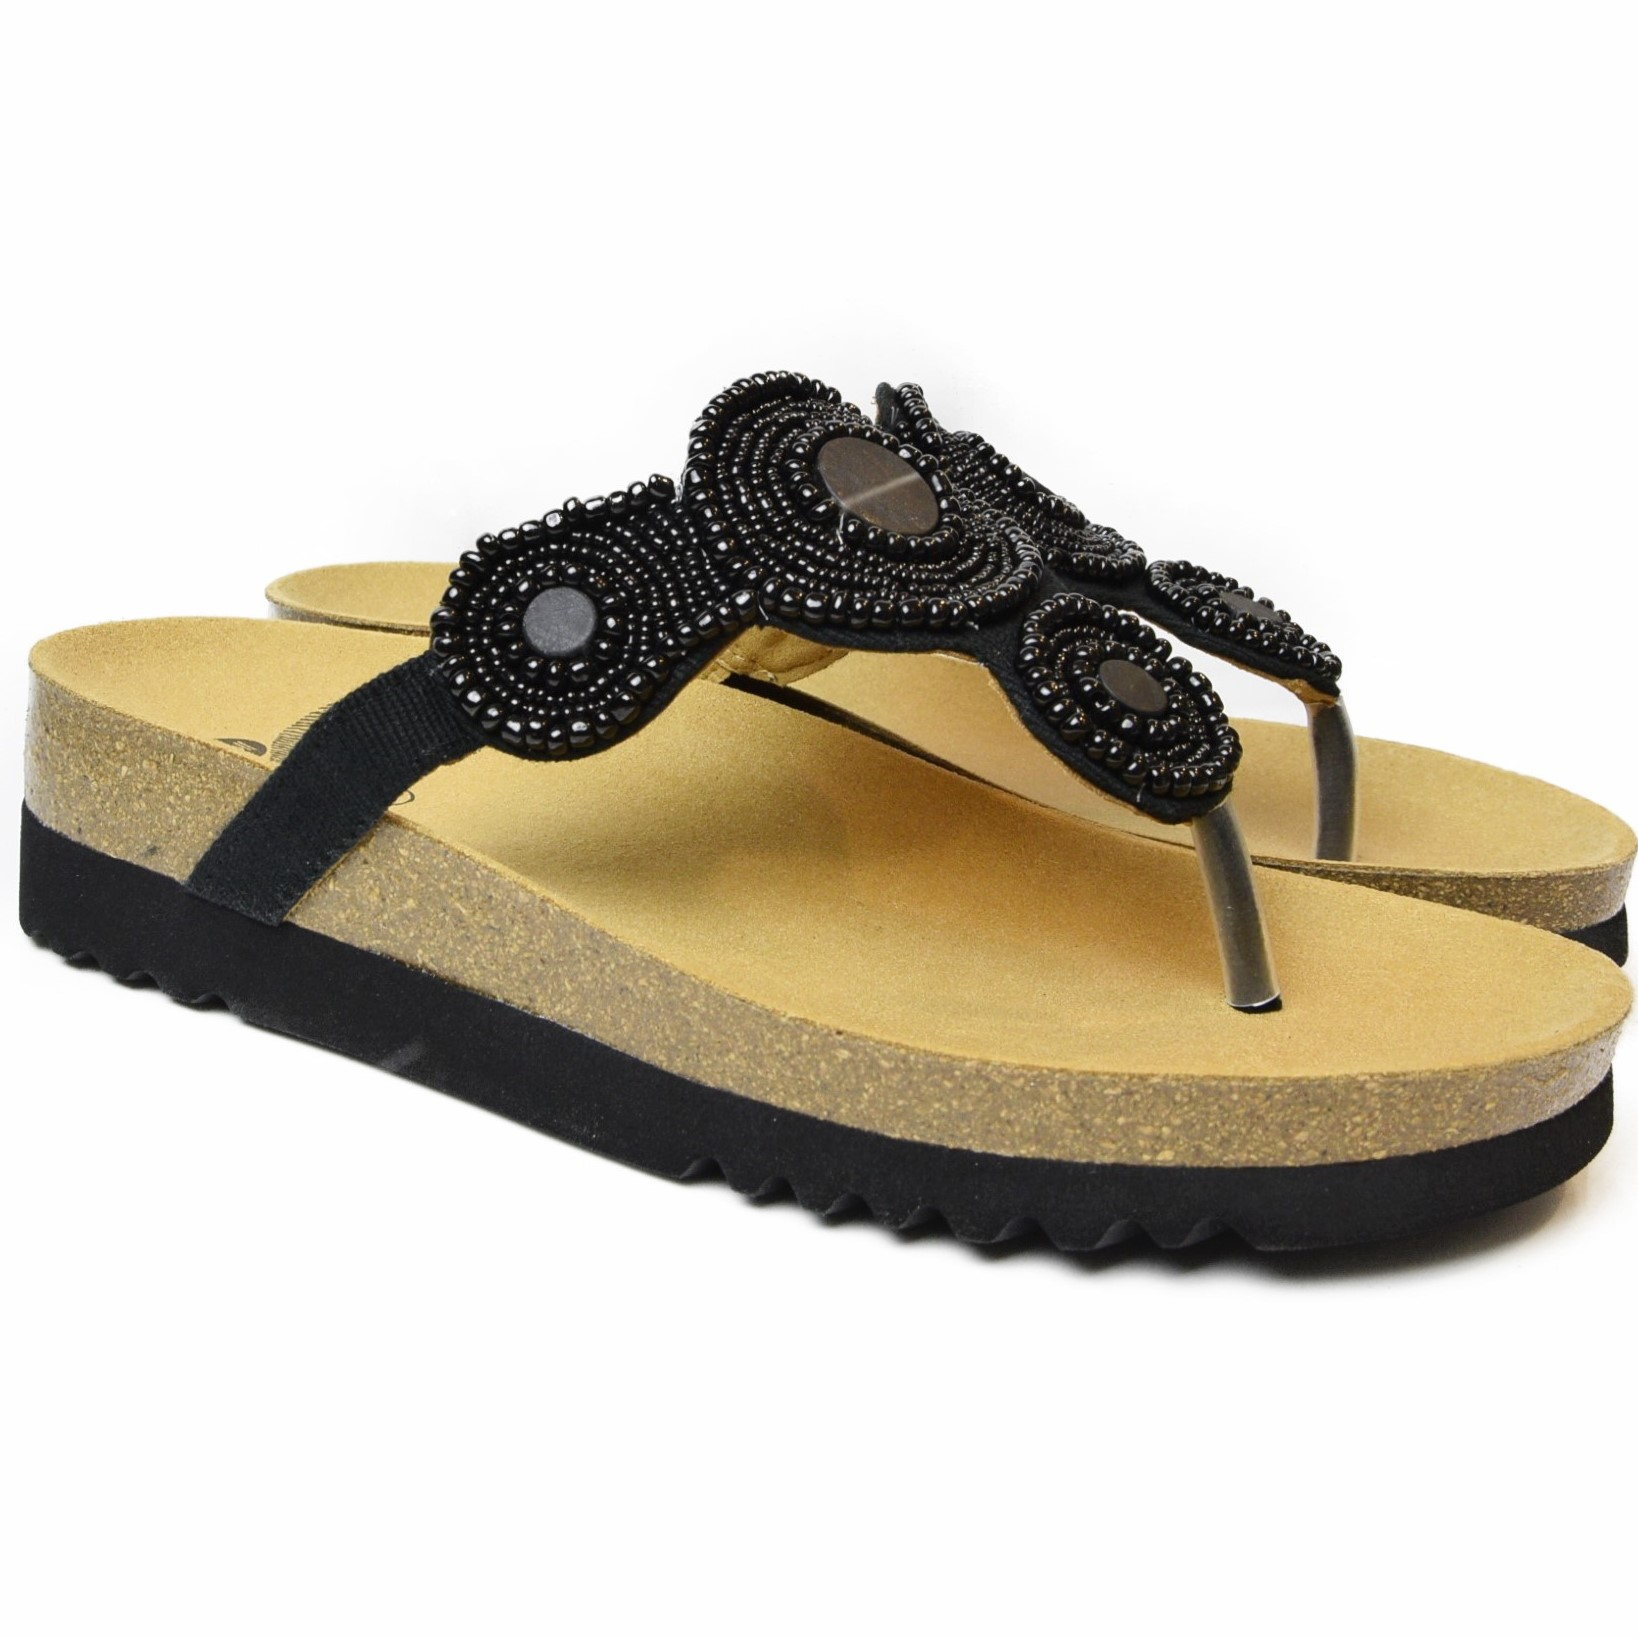 95be42d9d DR. SCHOLL WOMEN S FLIP FLOPS WITH BEADS ZARINA BLACK